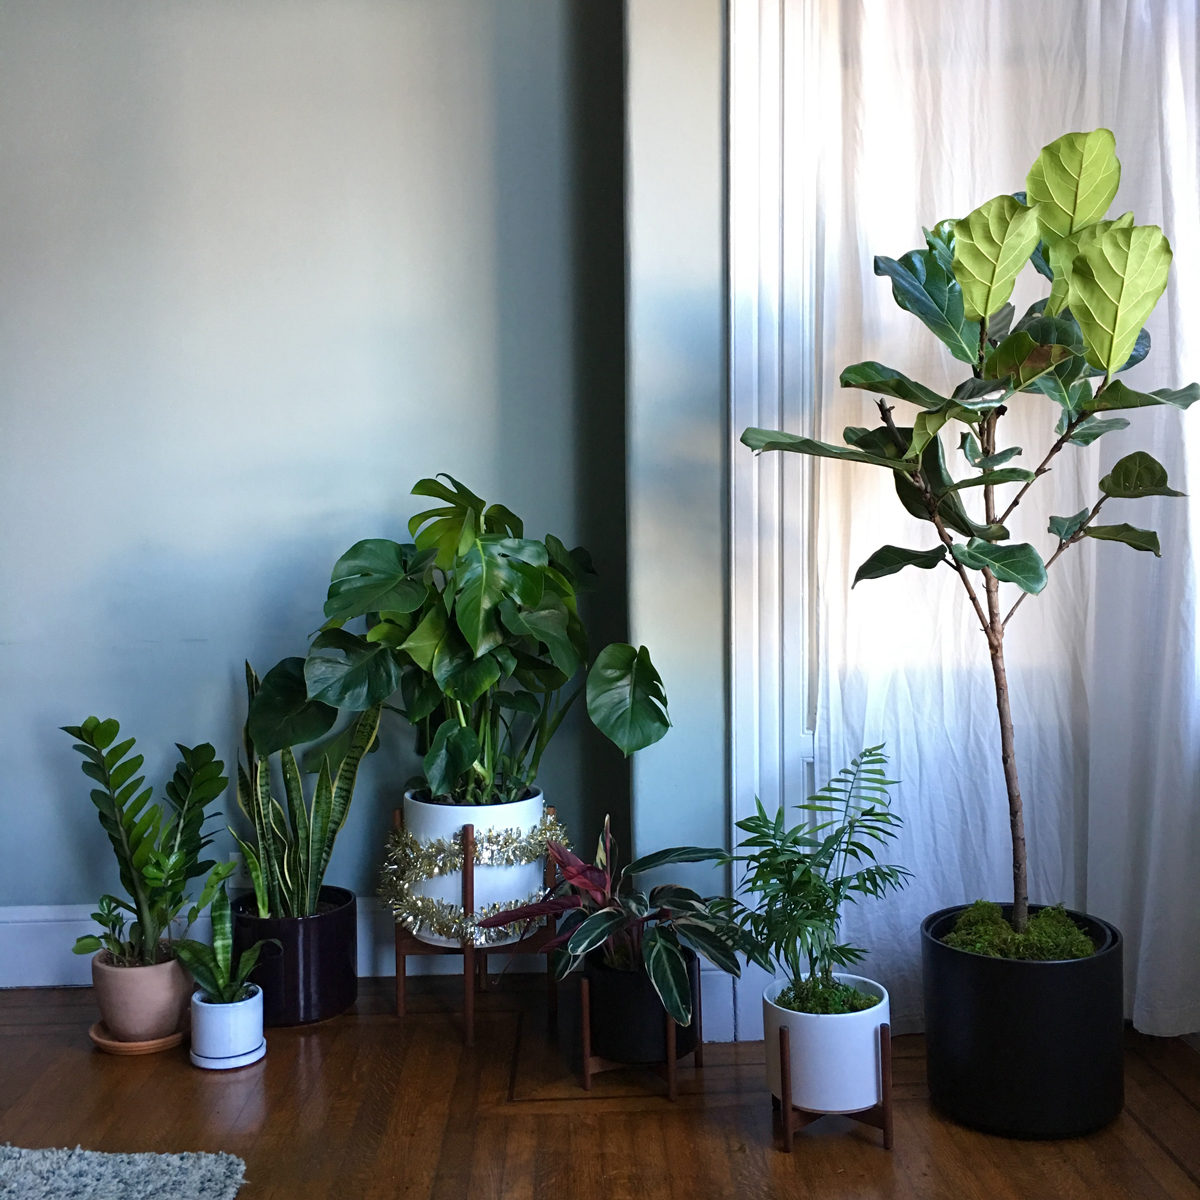 Houseplants placed from bright (R) to medium light (L).